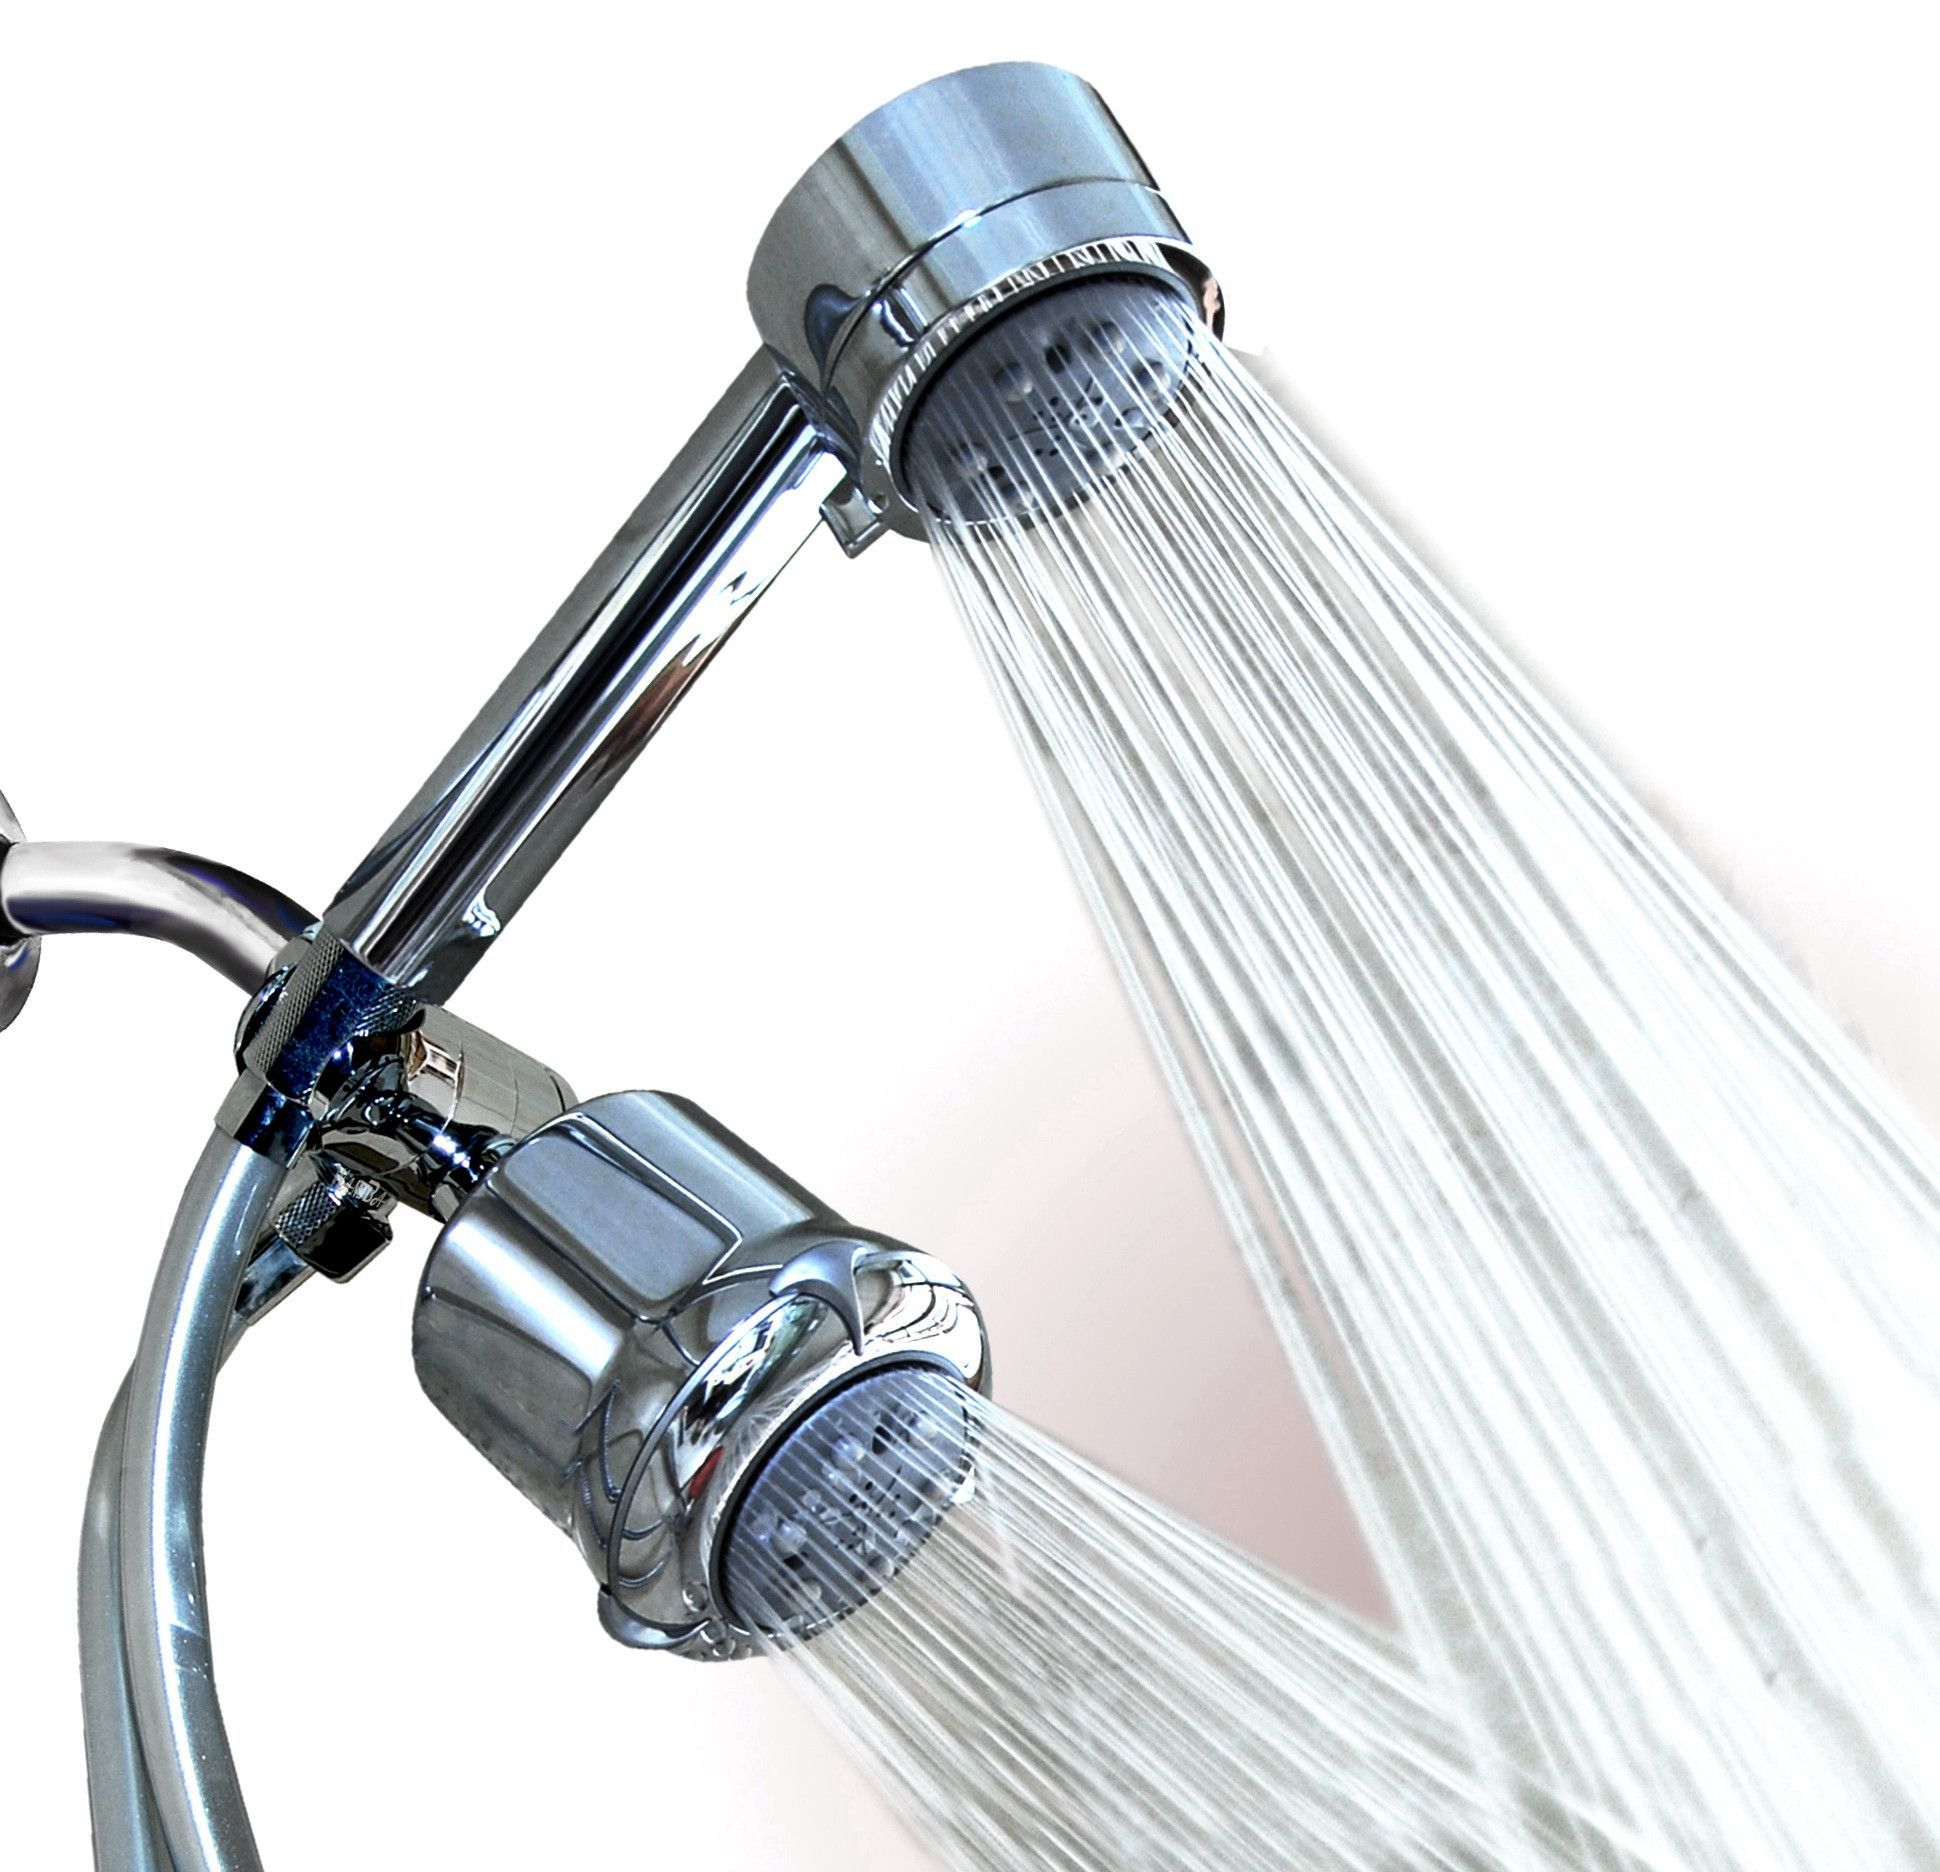 Setting Massage Spa Shower Head Combo With Hose And Handheld - Dual rain shower head with handheld